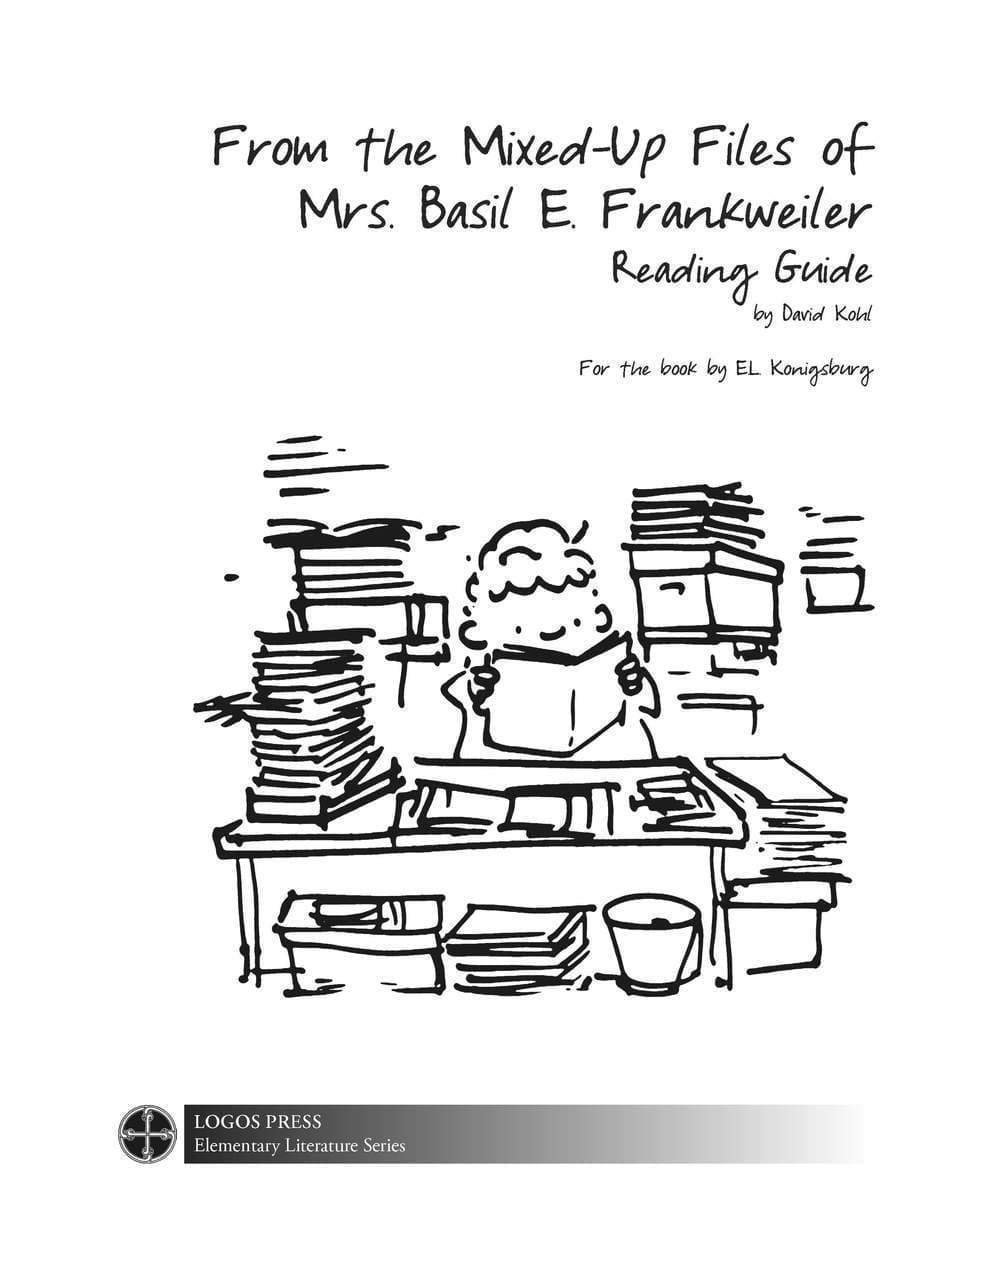 From the Mixed up files of Mrs. Basil E. Frankweiler – Reading Guide (Download)